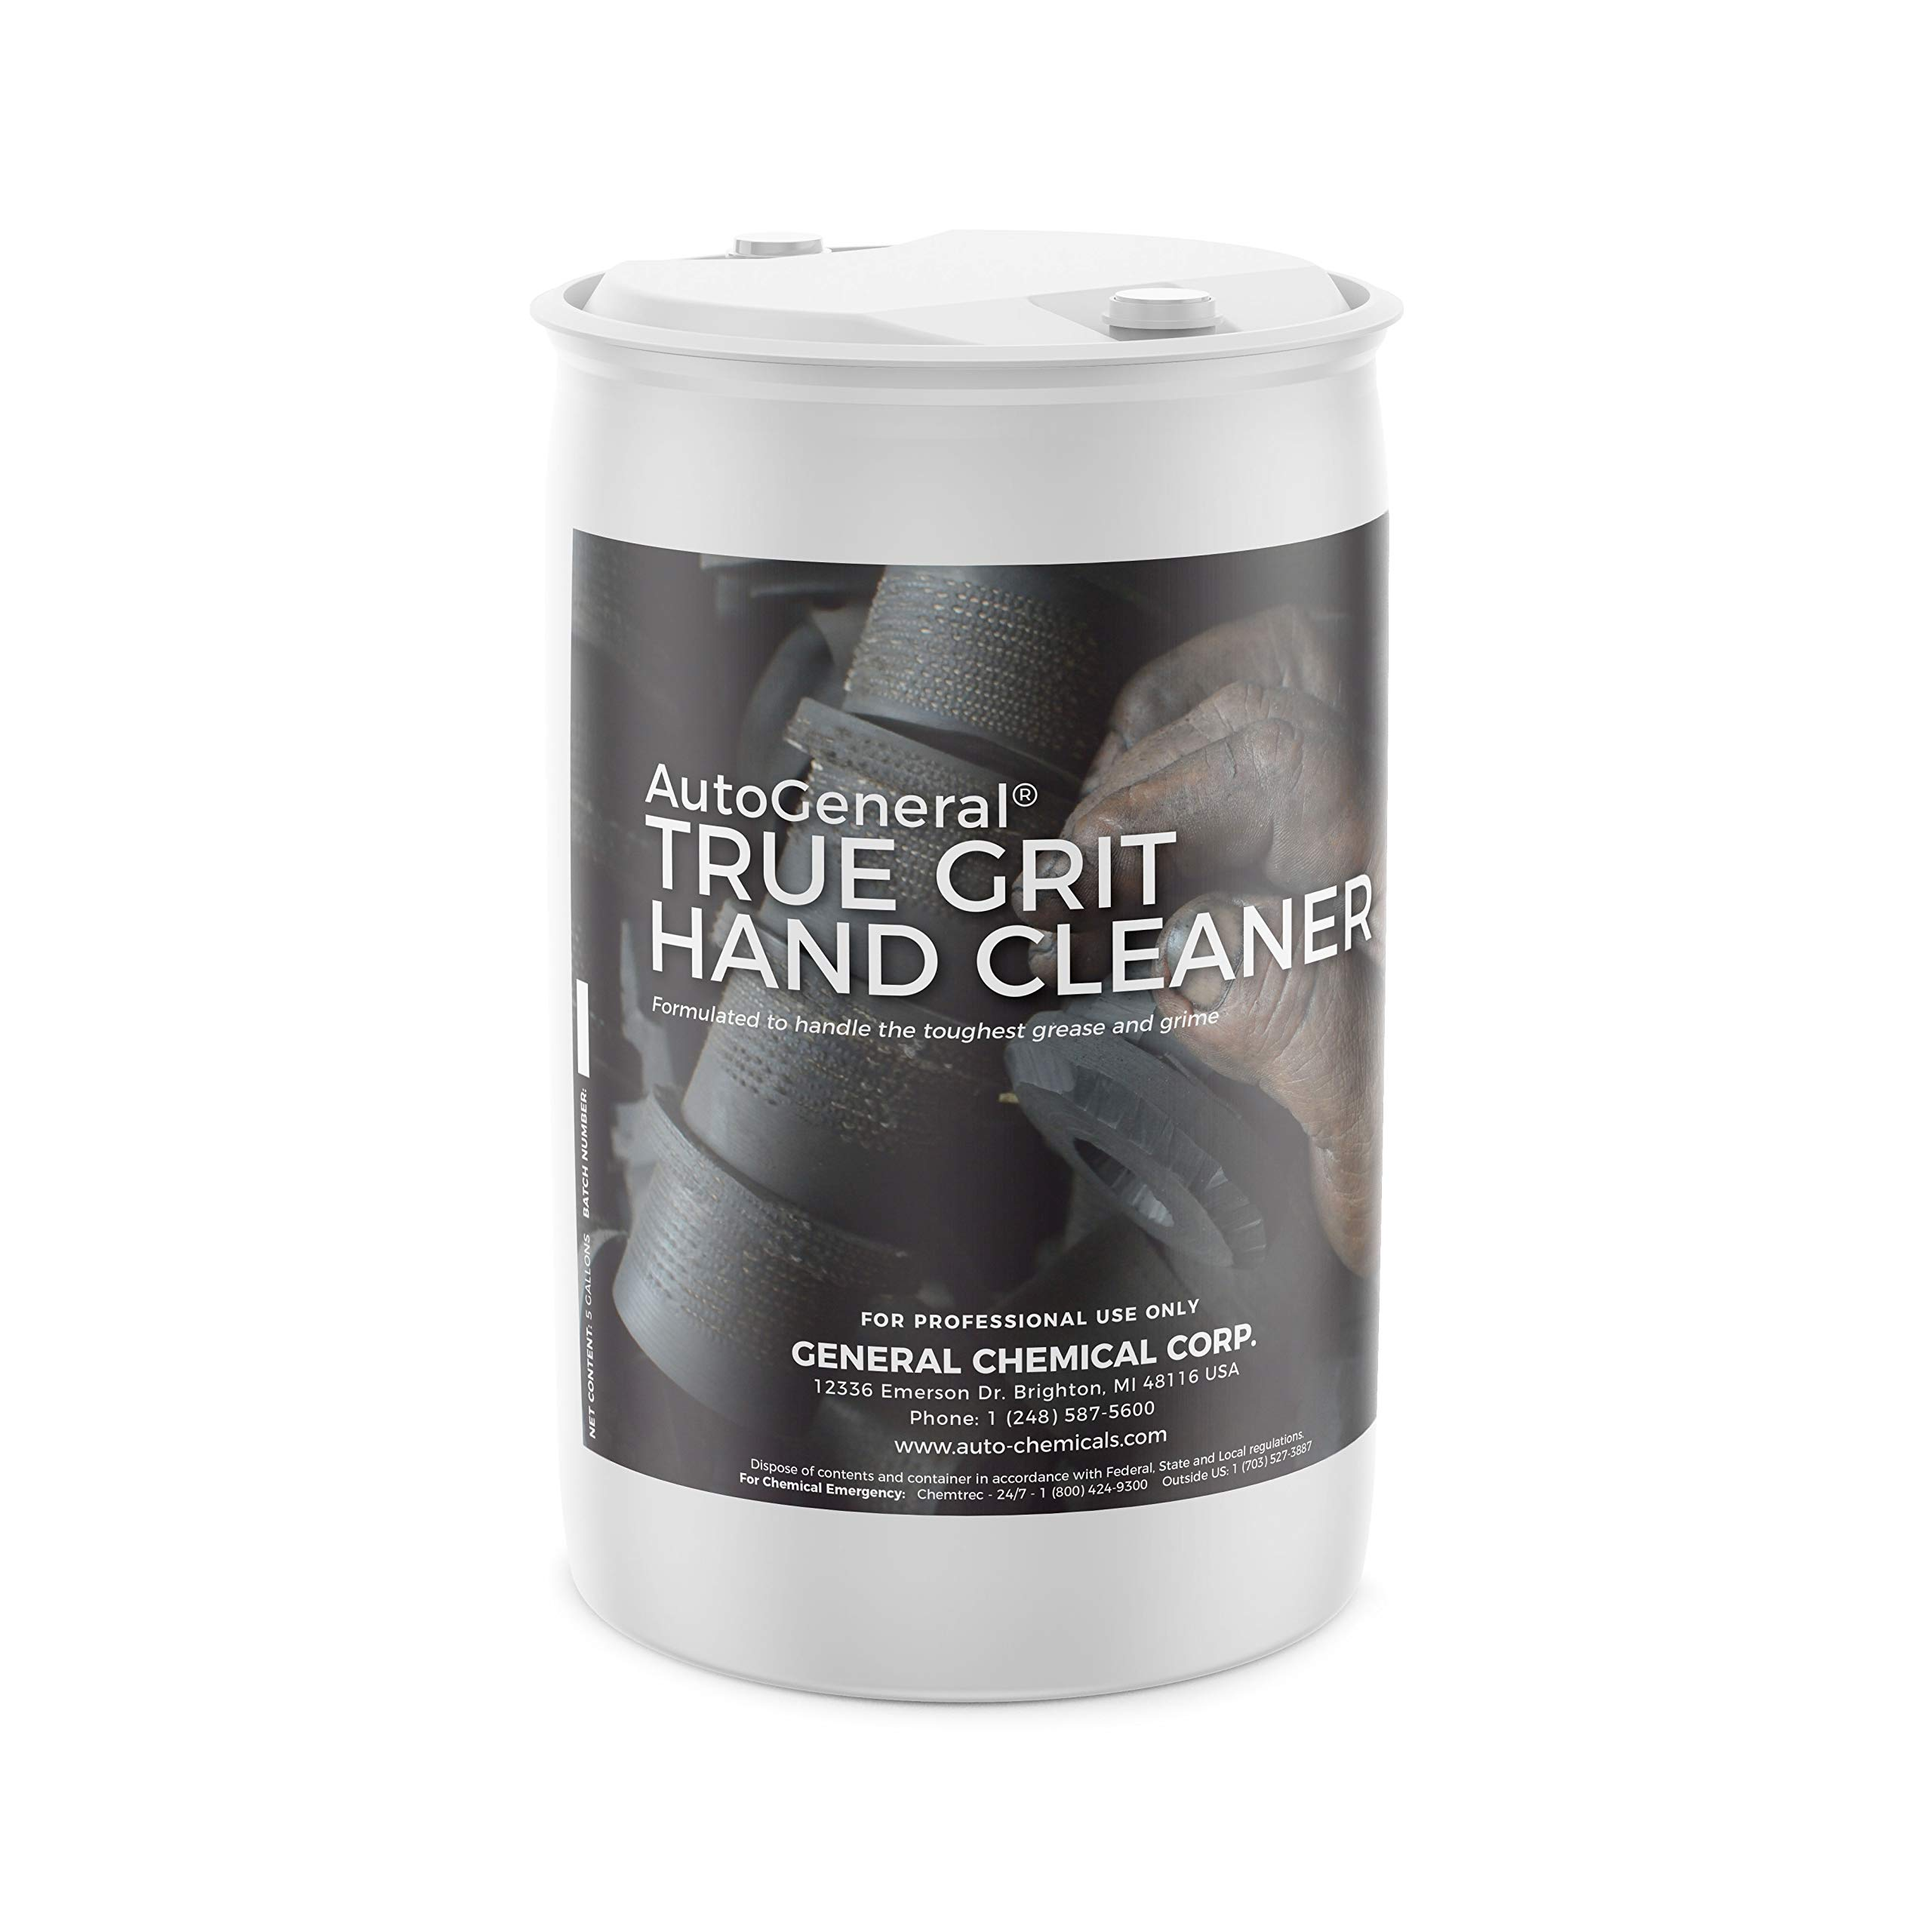 Auto General True GRIT Hand Cleaner Lotion Removes Tough Grease, Stains & Residue for Painters Auto Mechanics & Craftsman (55 Gallons) by Auto General (Image #1)